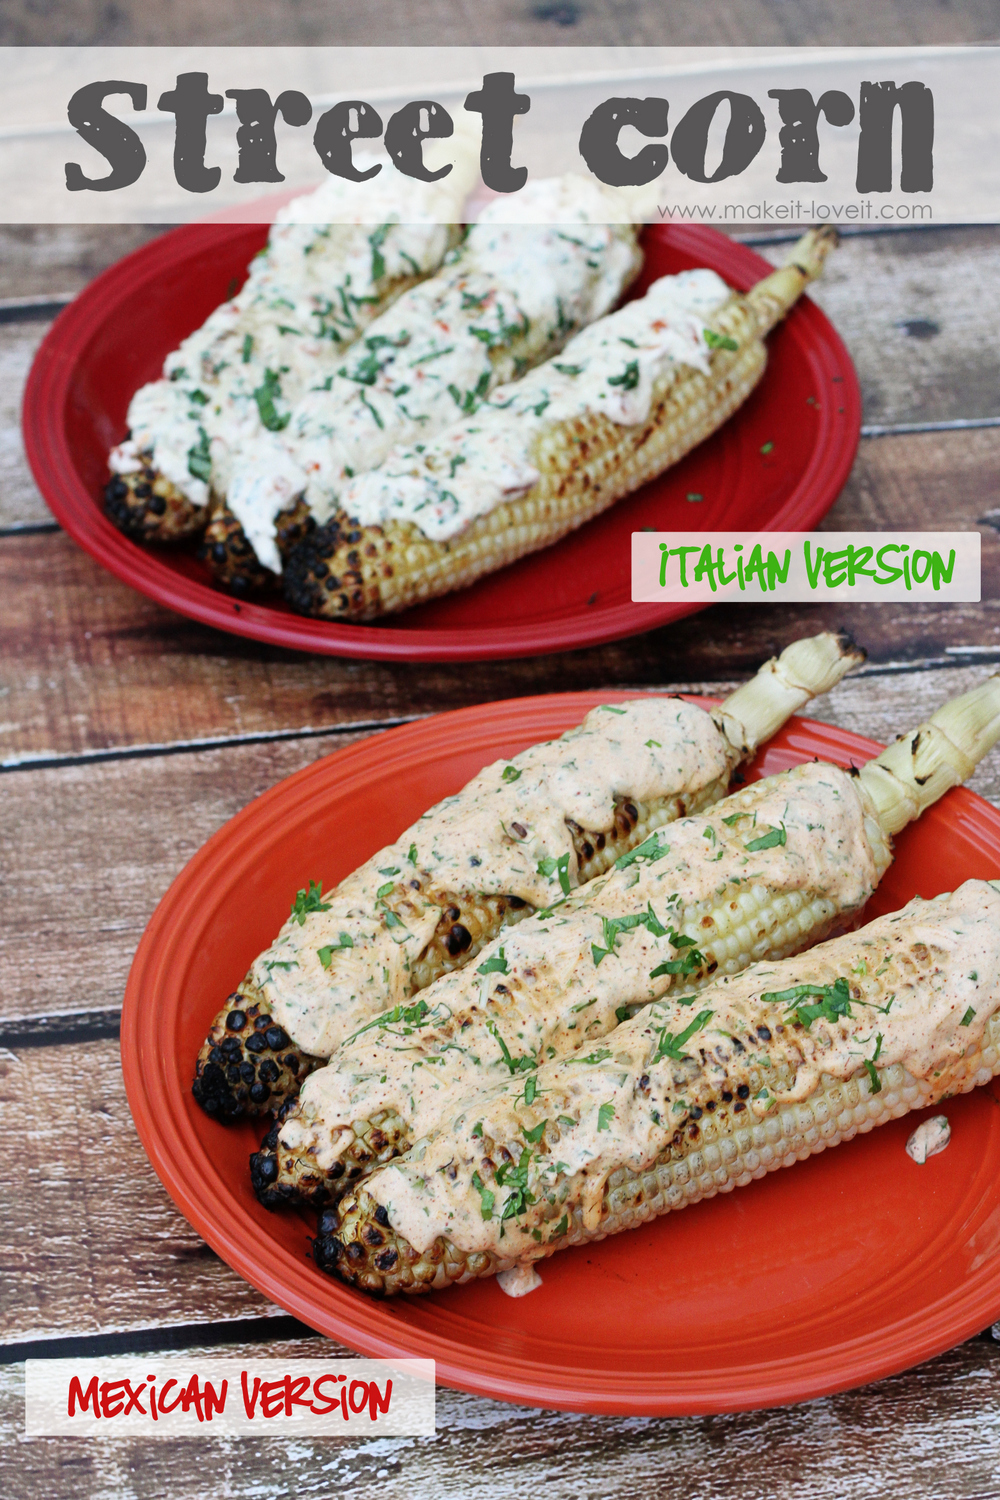 Street Corn: Mexican and Italian versions (American-ized!!) by Make It and Love It